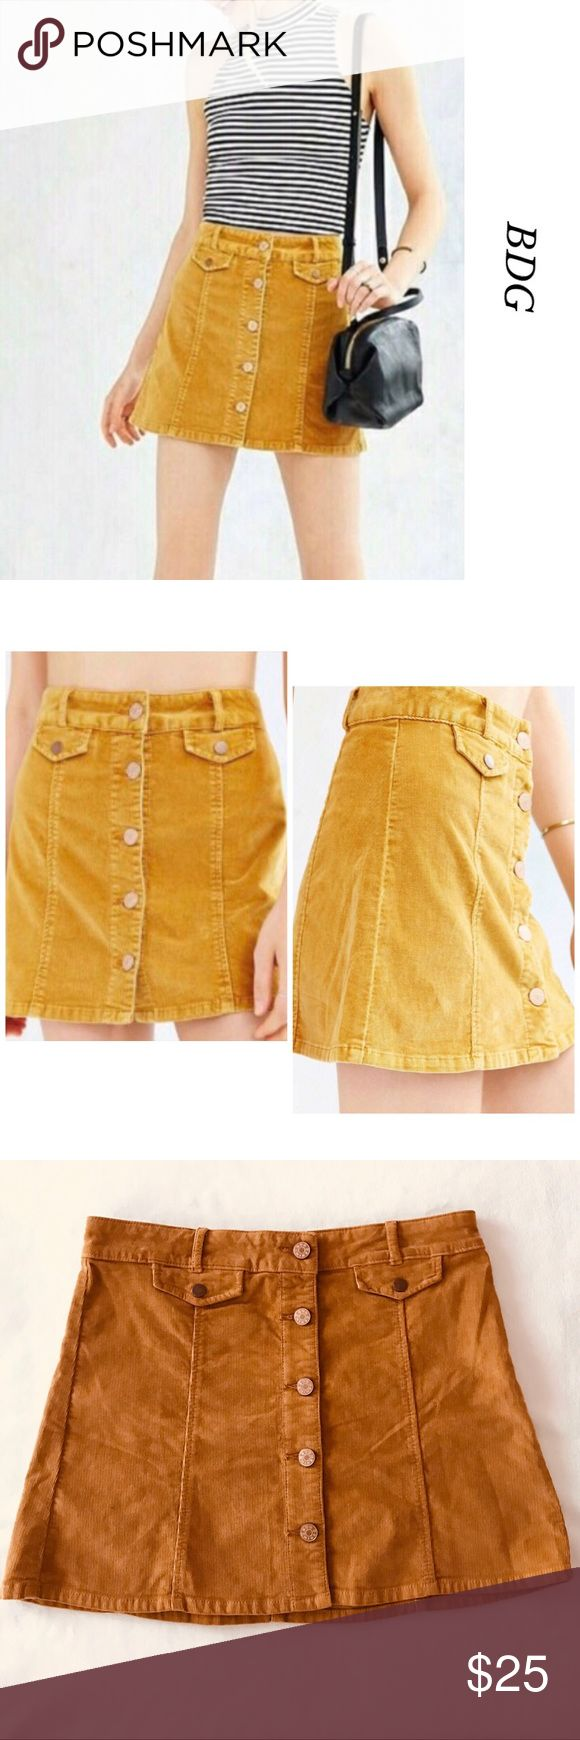 BDG  UO MUSTARD/GOLD CORDUROY MINI SKIRT NOWT, beautiful BDG Urban Outfitters Women's Corduroy Mini Skirt. Perfect for any season. Featuring five front buttons for closure, two small pockets with snap. Color: Mustard/Gold . 98% Cotton 2% Spandex. Line tag to prevent store returns. Bundle and save. Please, feel free to ask me any questions. Urban Outfitters Skirts Mini